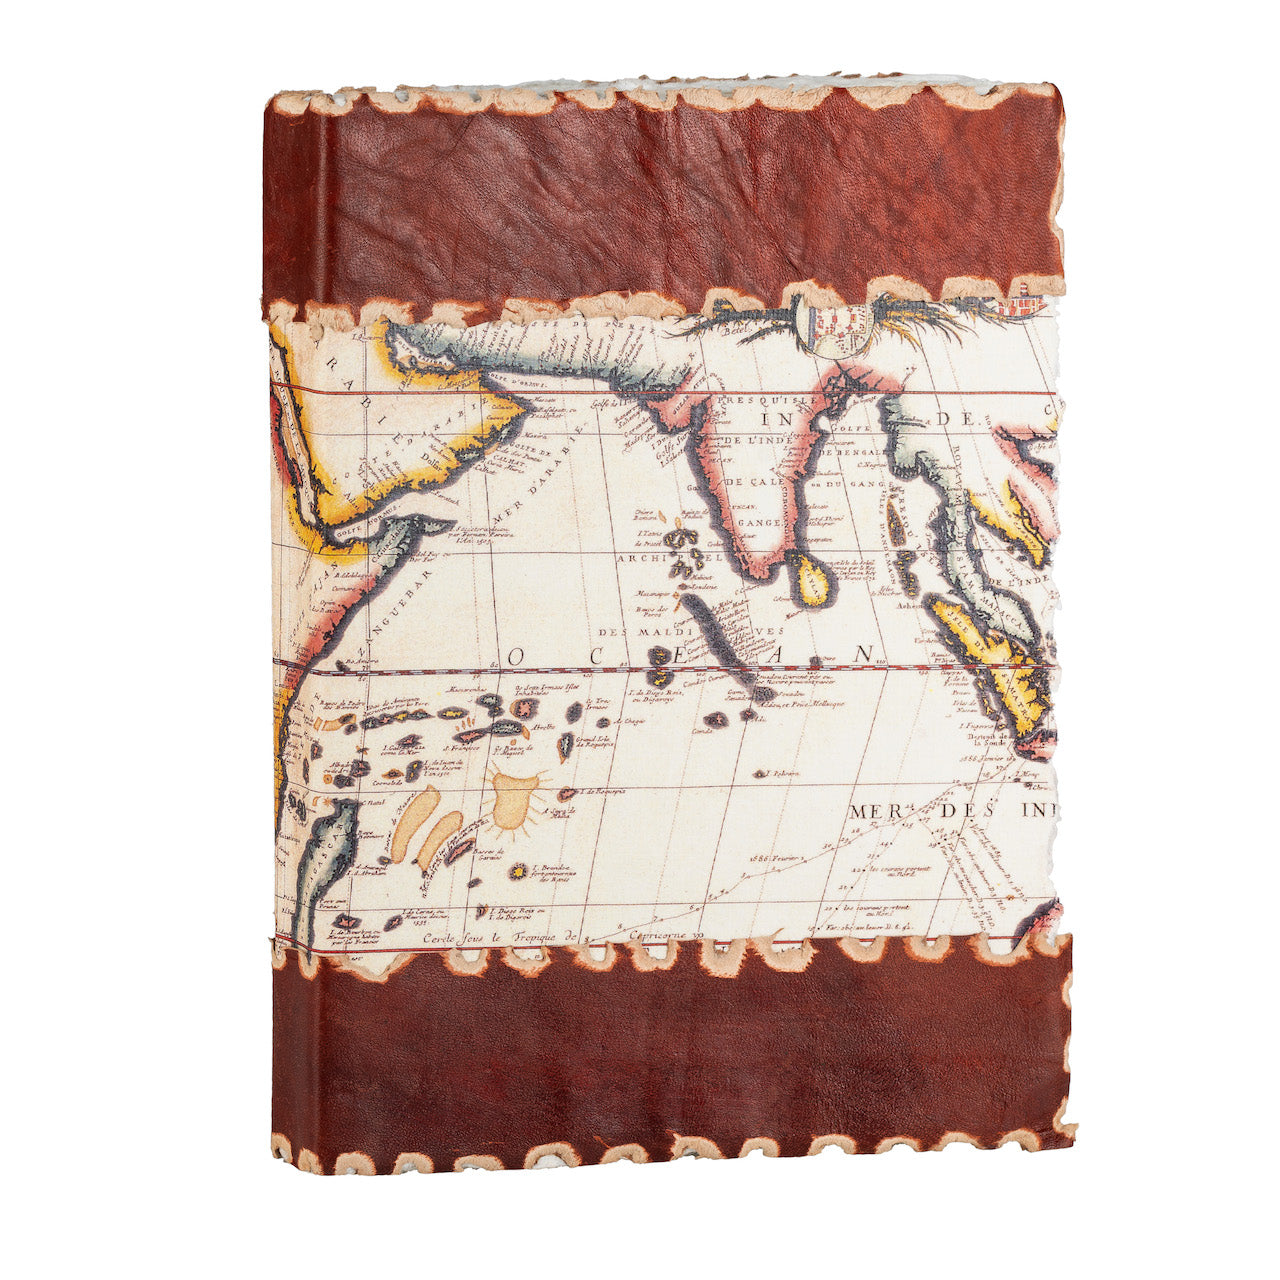 Handmade Leather Journal with 144 Hand Pulled Cotton Pages, Vintage World Map